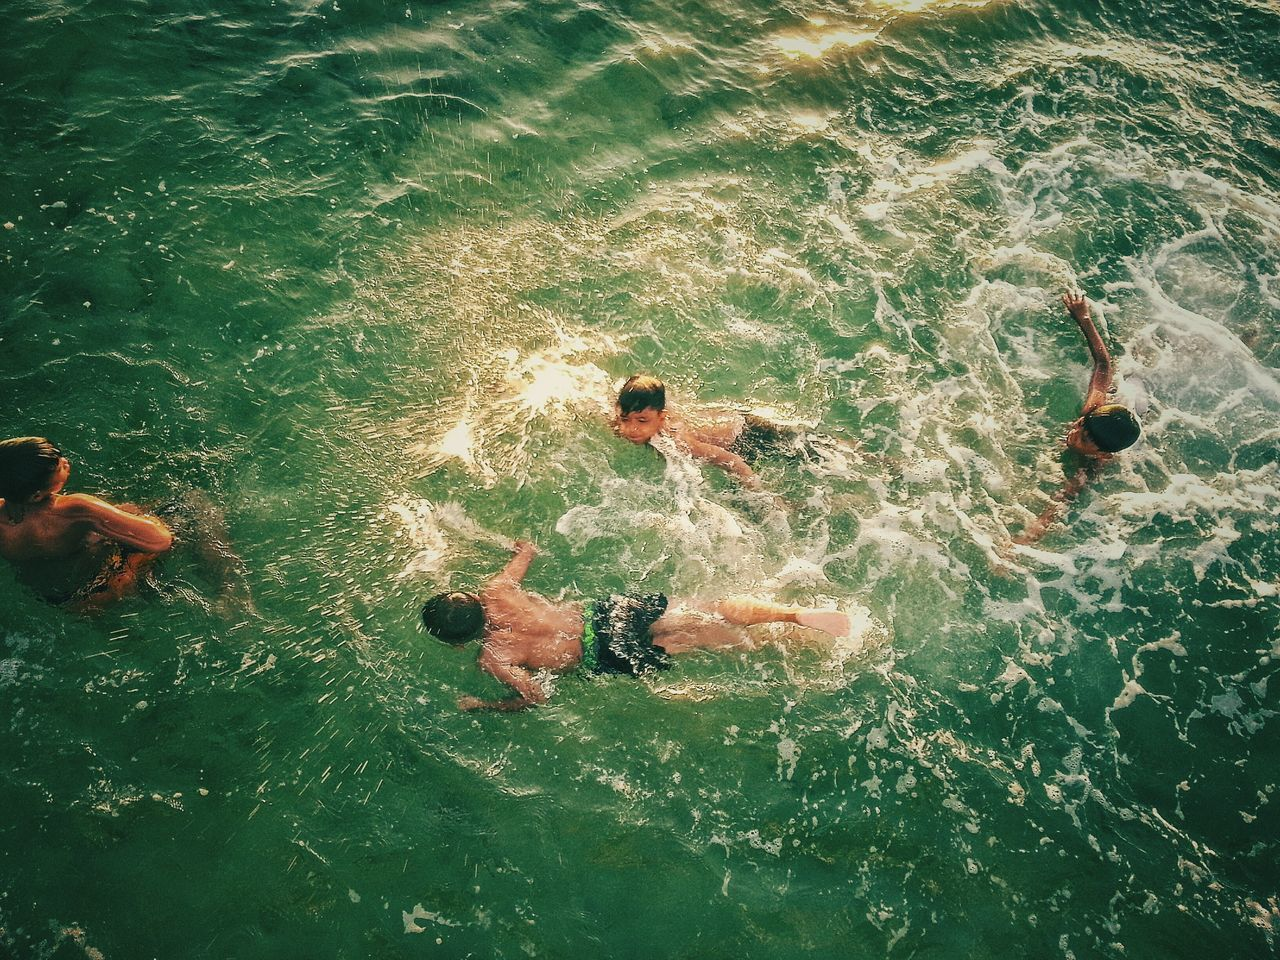 water, swimming, high angle view, real people, swimming pool, day, nature, shirtless, leisure activity, outdoors, lifestyles, sea